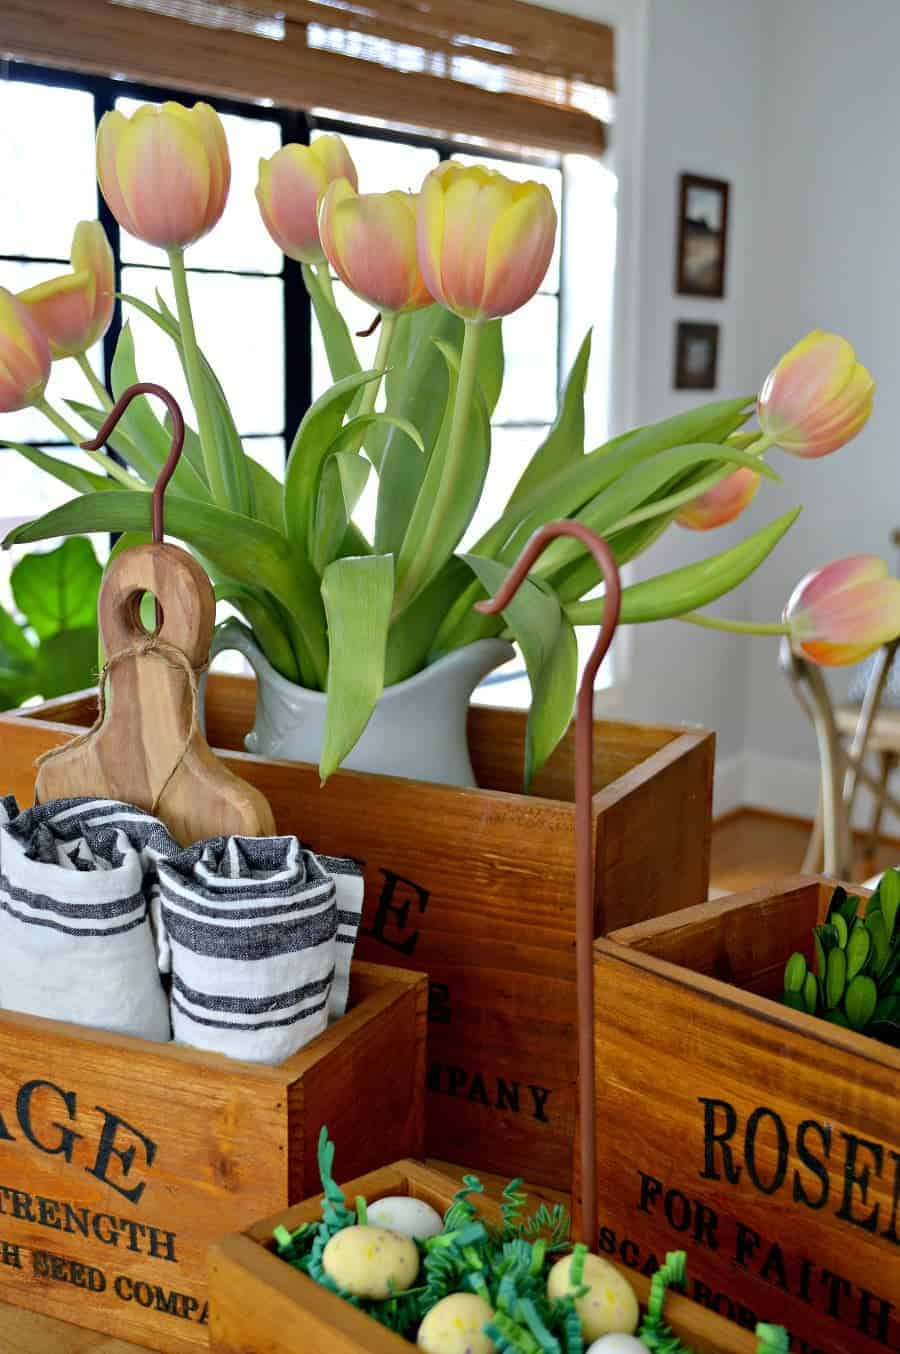 4 wooden herb boxes sitting on a butcher block island with tulips, napkins, candy eggs in green paper grass and green wreaths in them.